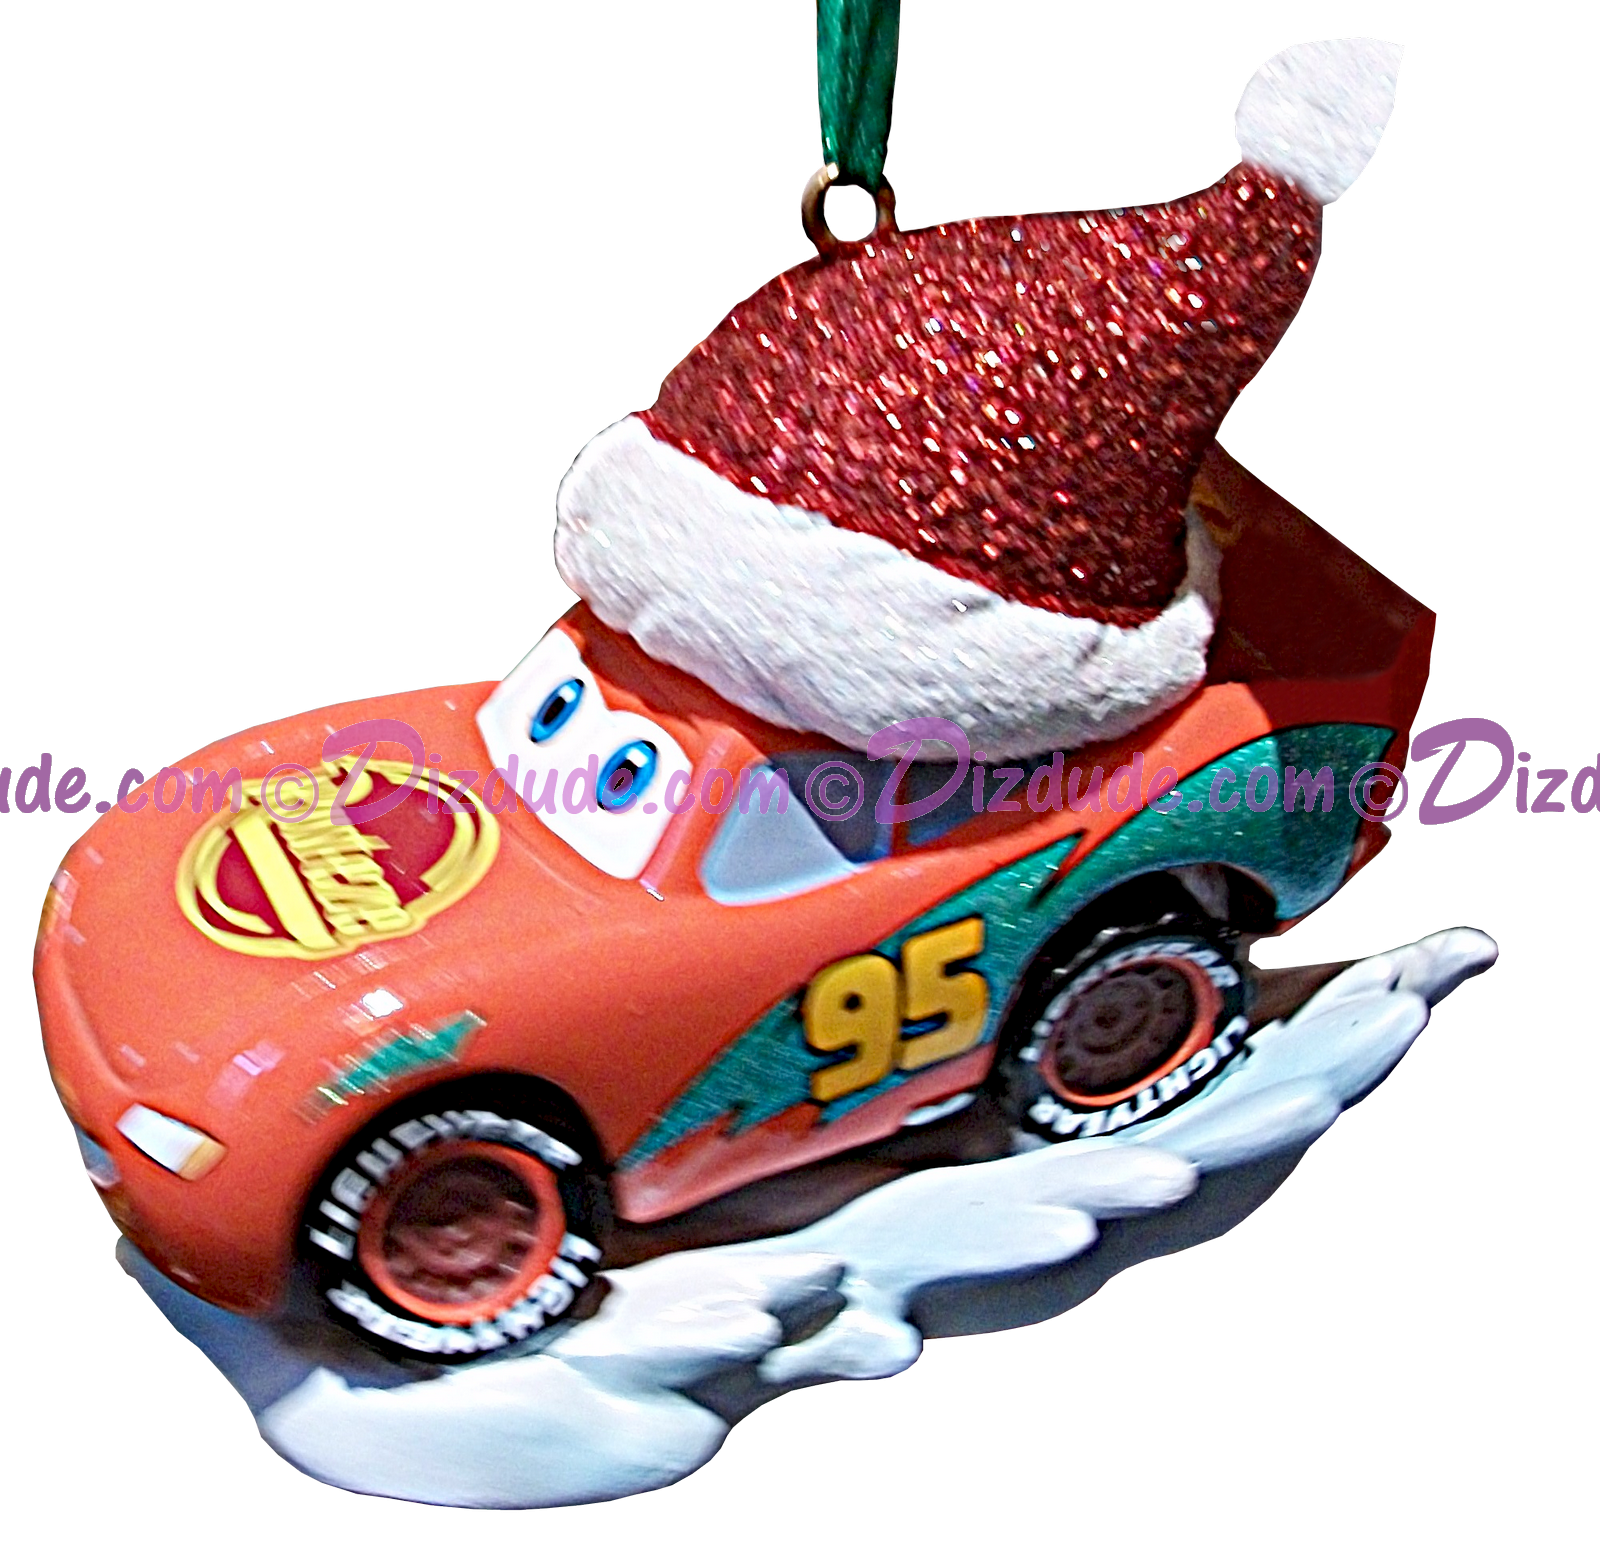 1600x1544 Disney Pixar Cars Lightning Mcqueen Christmas